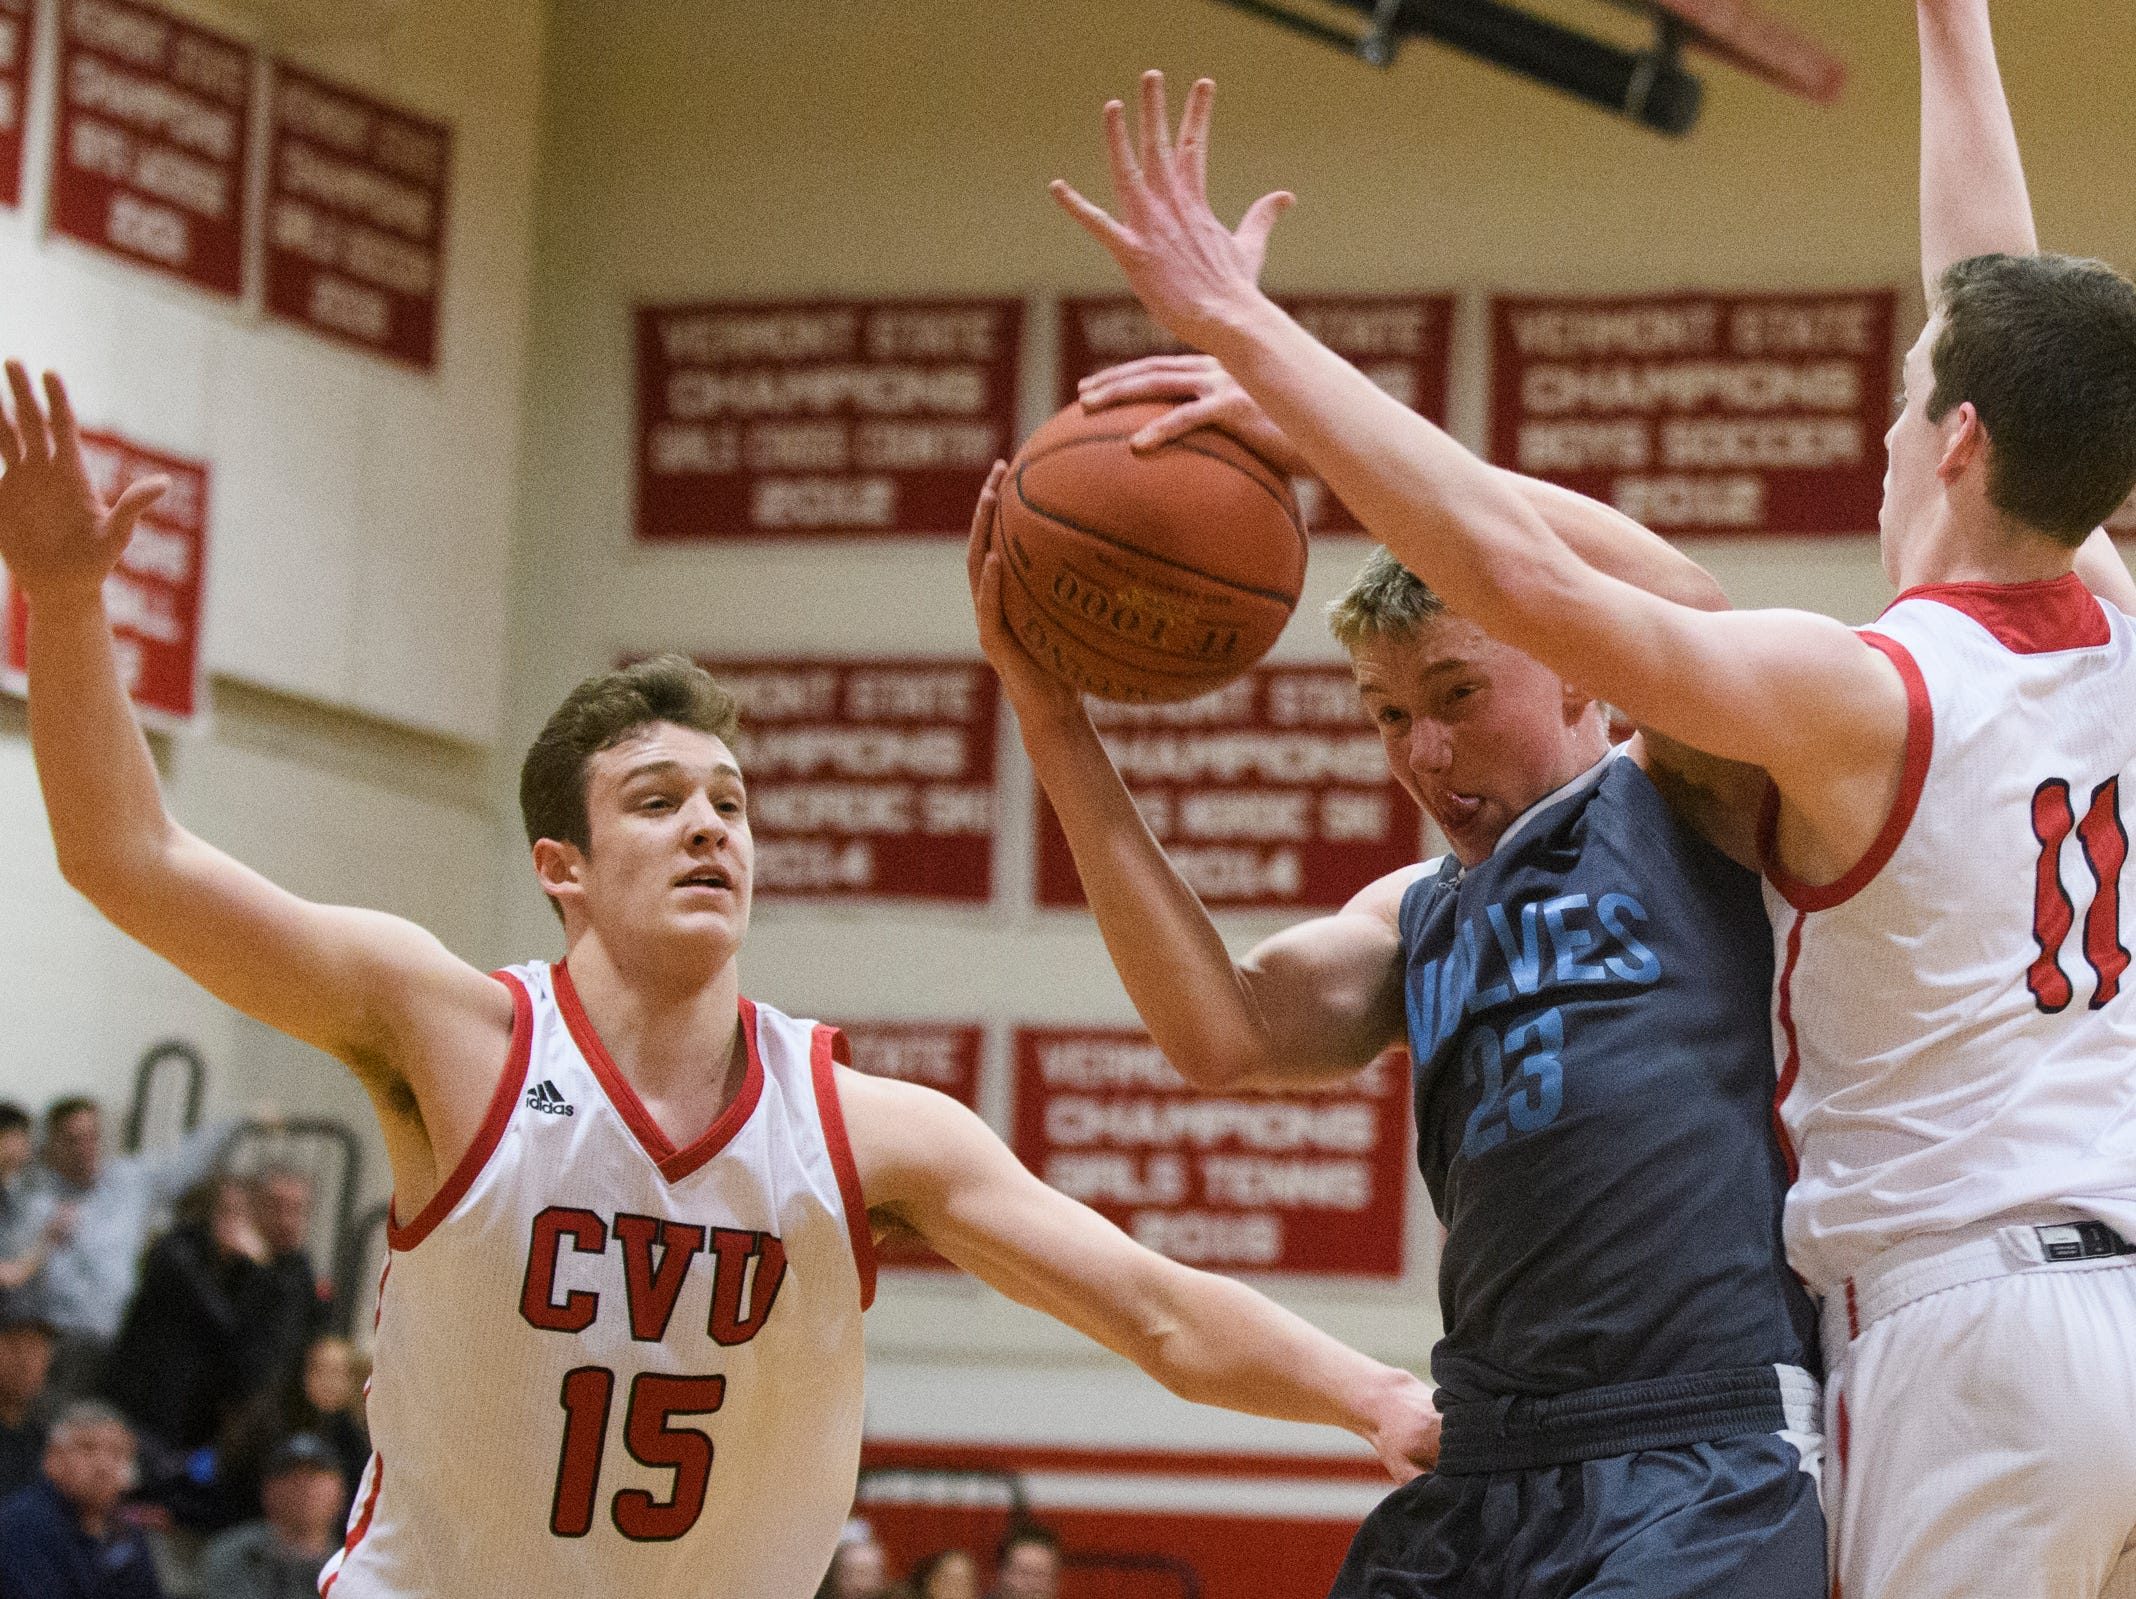 South Burlington's Tyler Gammon (23) battles for the rebound with CVU's Bennett Cheer (15) and Cole Otley (11) during the boys basketball game between he South Burlington Wolves and the Champlain Valley Union Redhawks at CVU High School on Tuesday night March 5, 2019 in Hinesburg, Vermont.